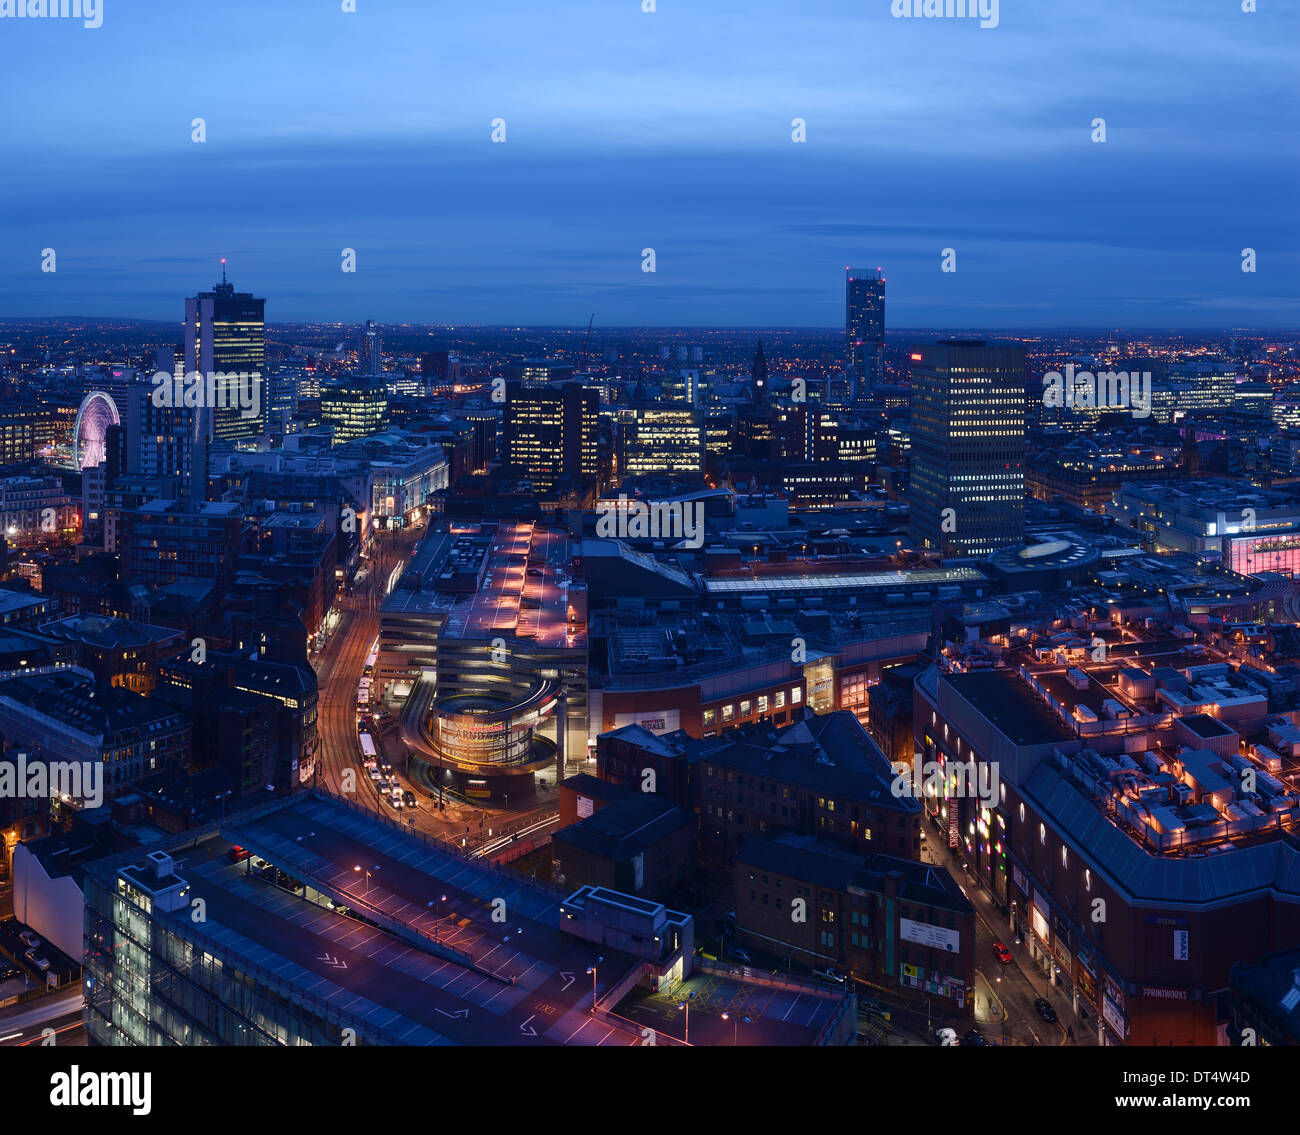 Manchester city centre at night including The Arndale Centre and The Printworks - Stock Image